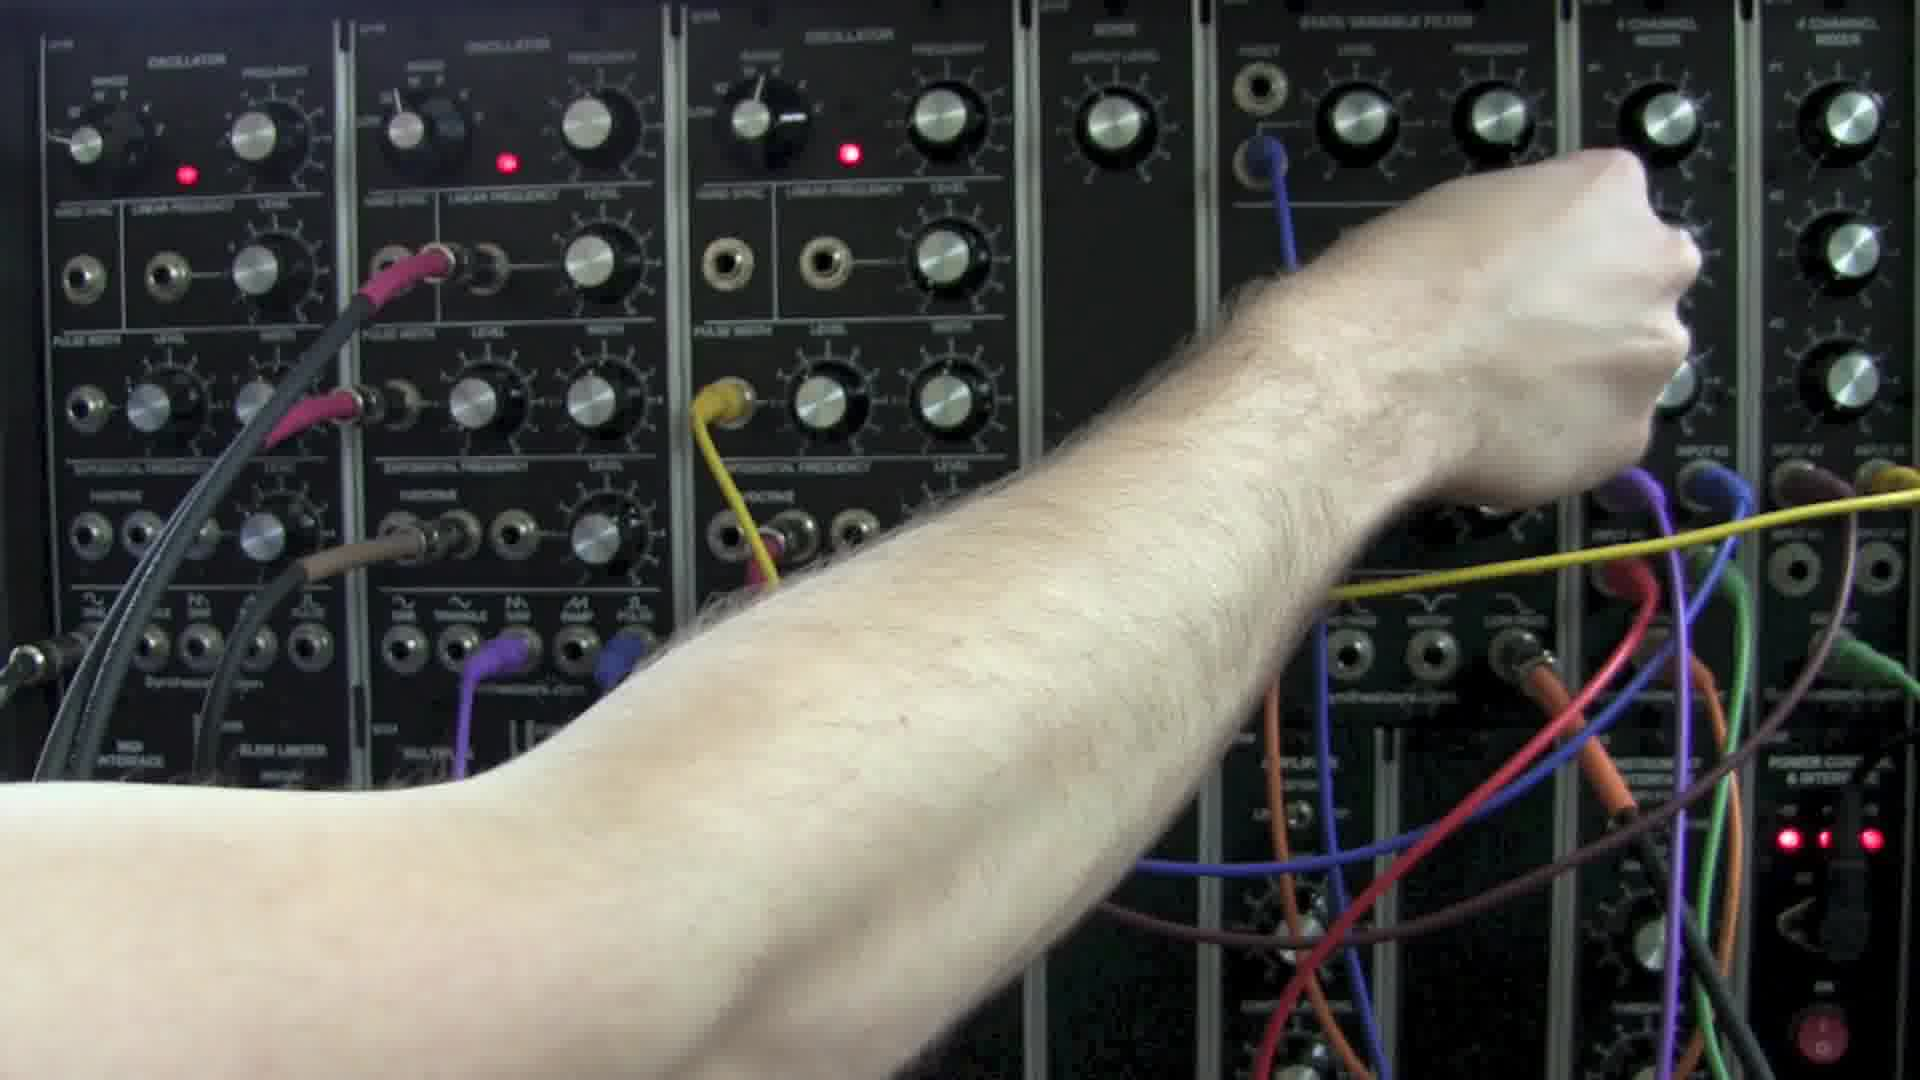 modular synthesizer demo